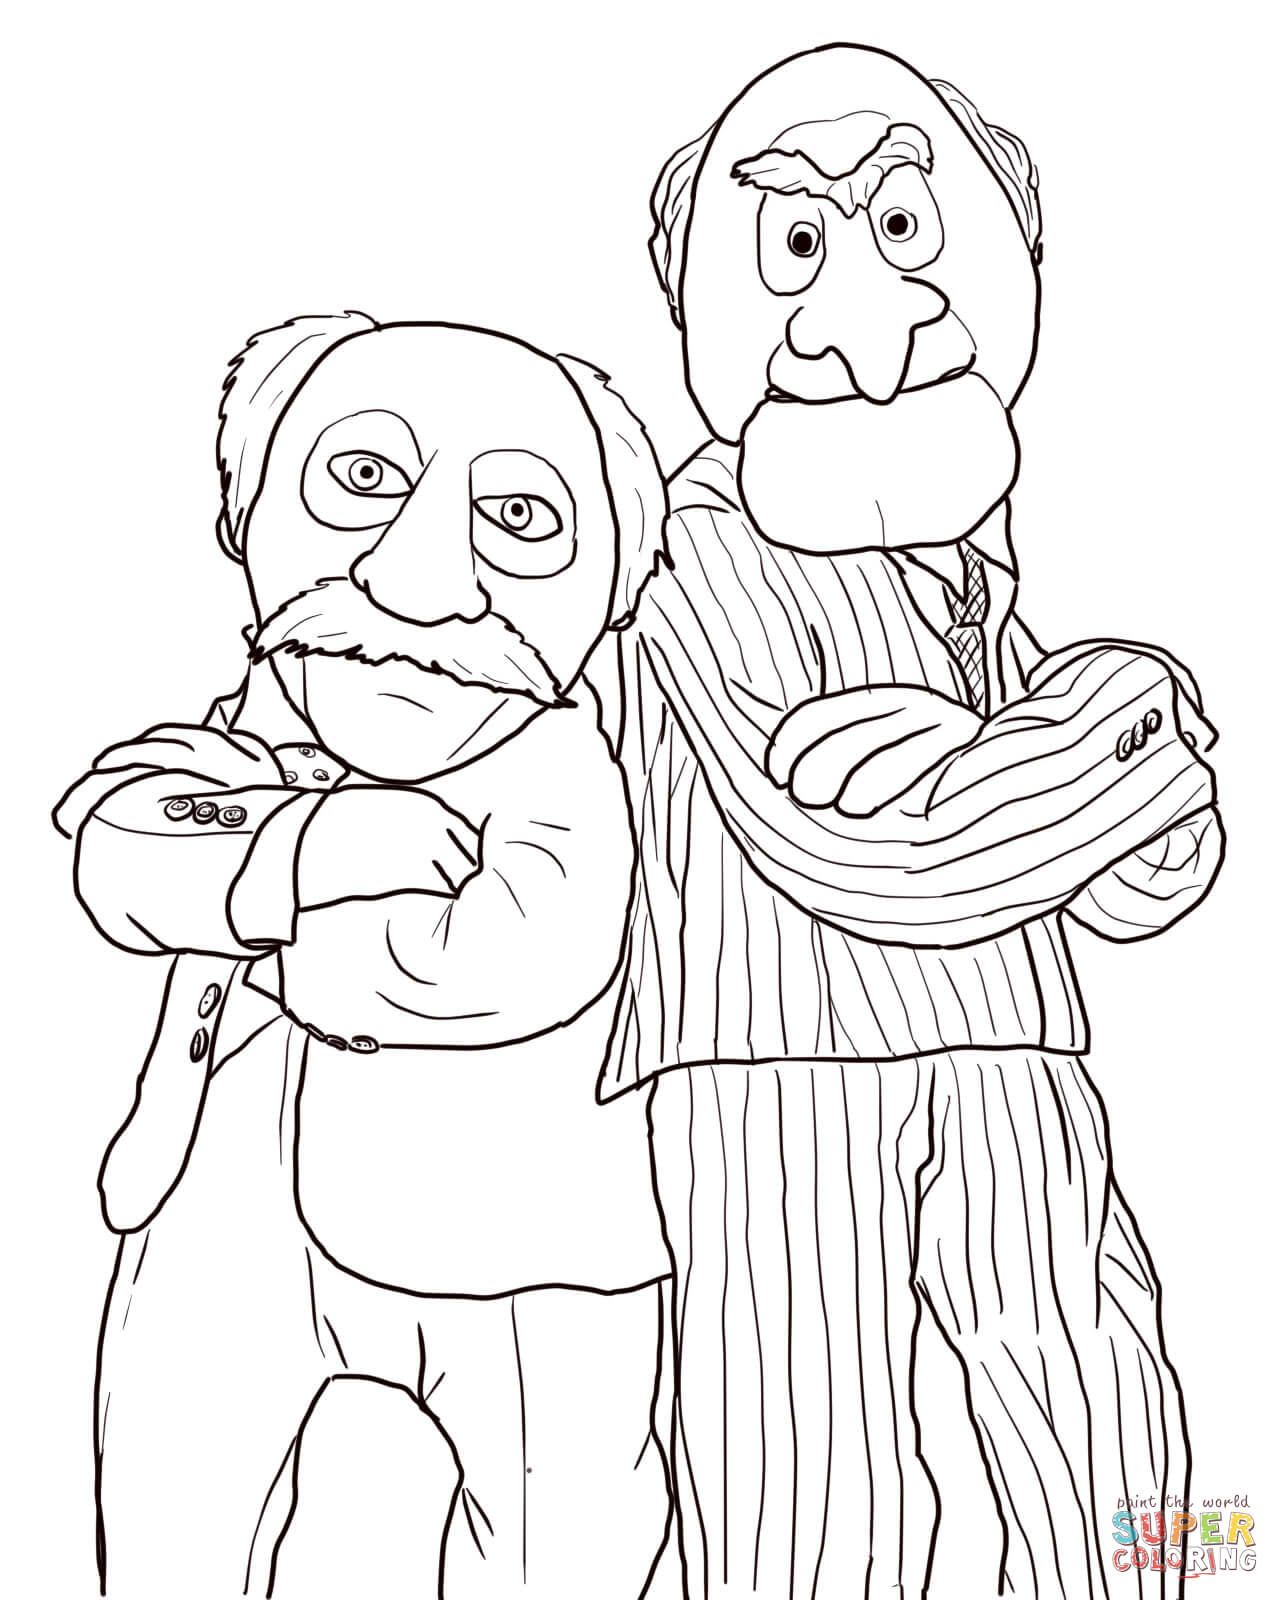 Statler And Waldorf Coloring Page